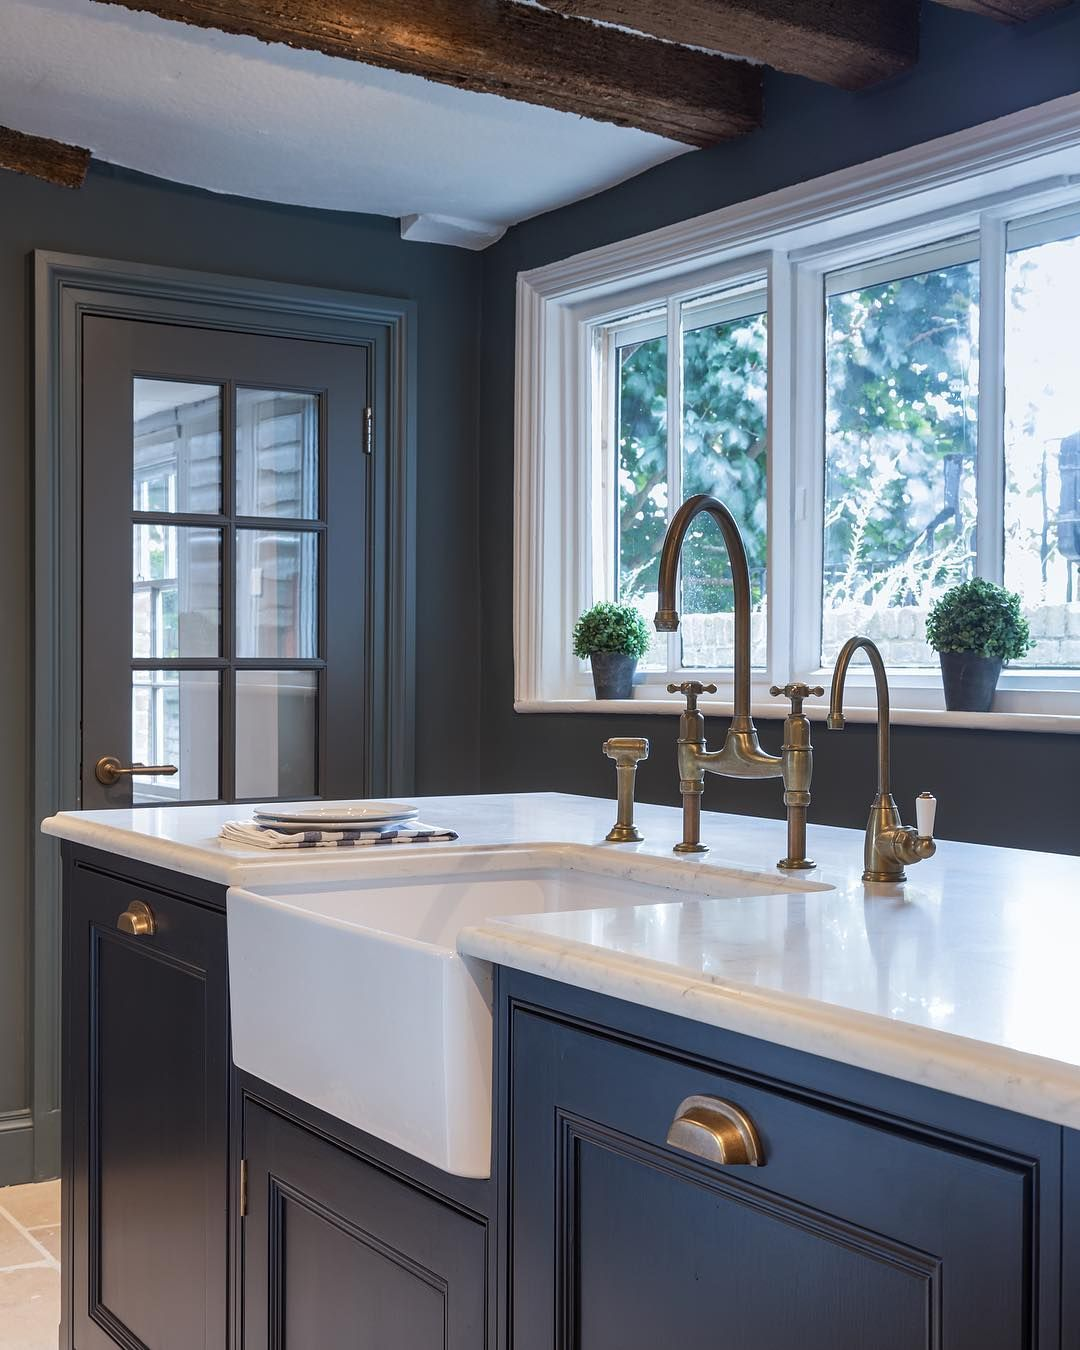 Dreamy Kitchen By Humphreymunson Featuring Our Ionian Mixer Tap And Rinse And Parthian Hot Water T English Country Kitchens Dining Room French Humphrey Munson